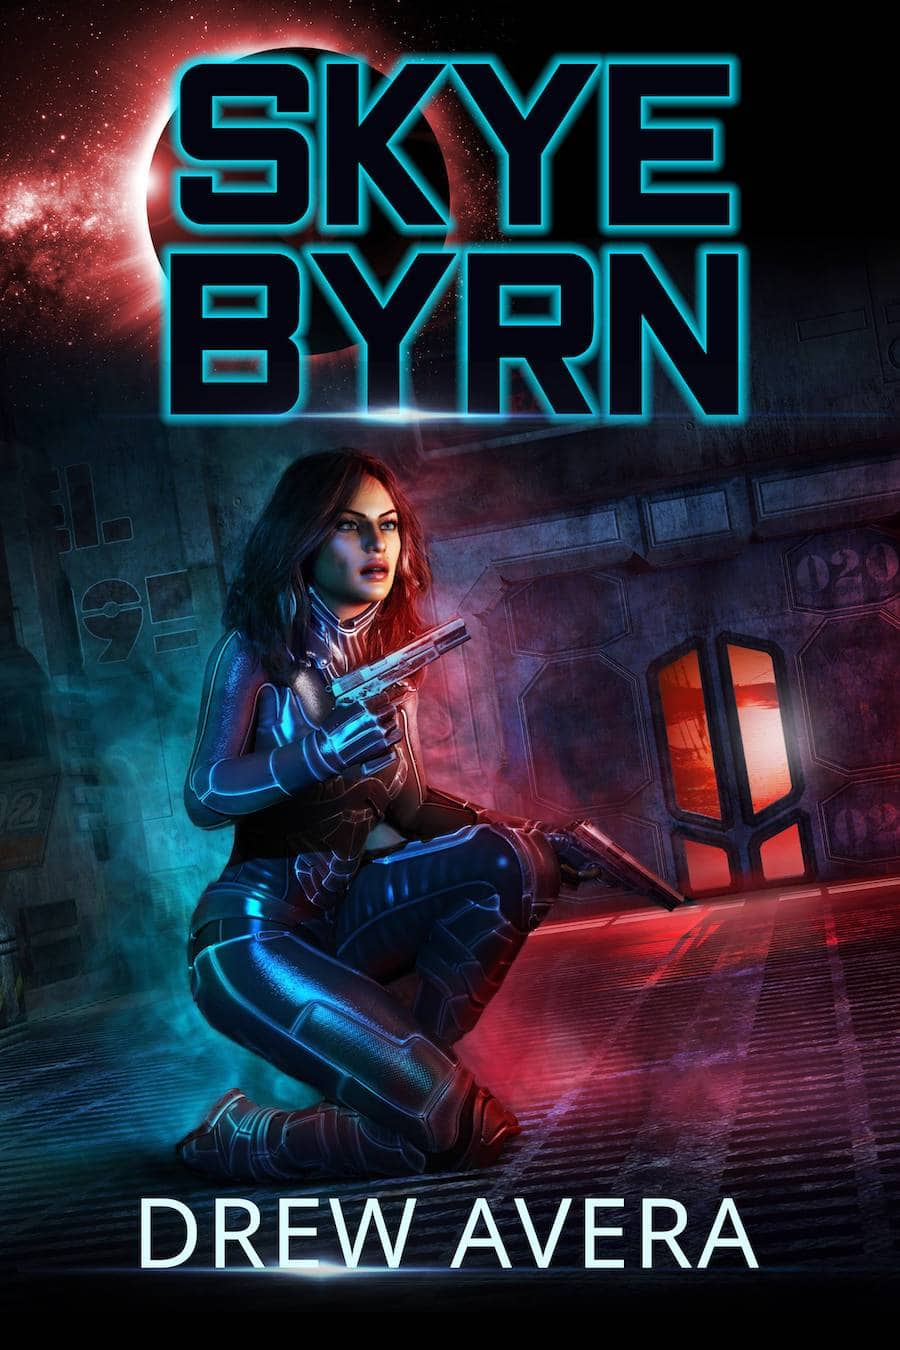 """Check out this gritty cyberpunk, SKYE BYRN, by Drew Avera. """"Revenge is a dish best served with two smoking barrels..."""""""